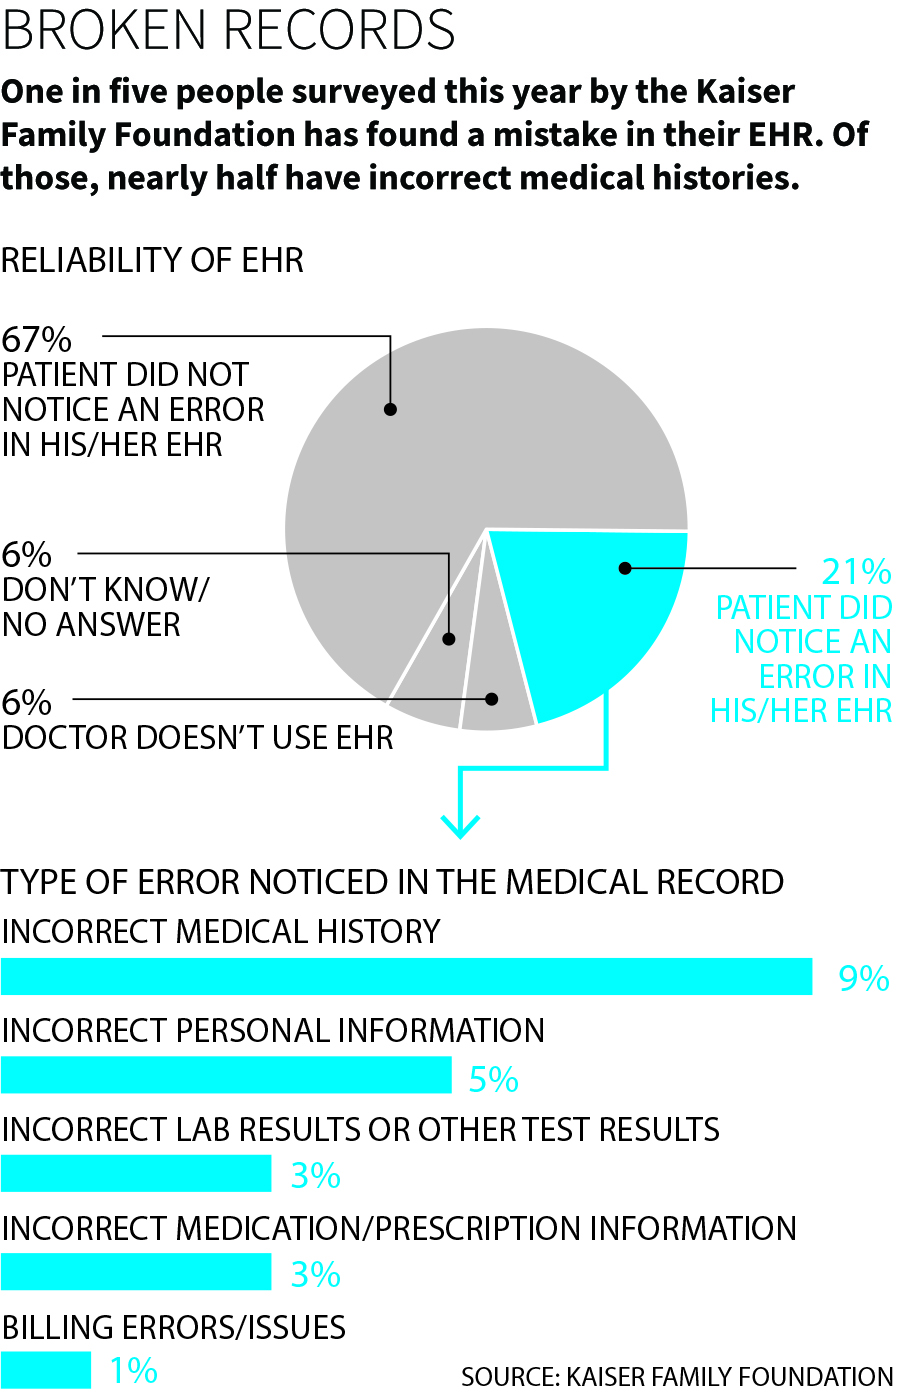 Death By A Thousand Clicks: Where Electronic Health Records Went